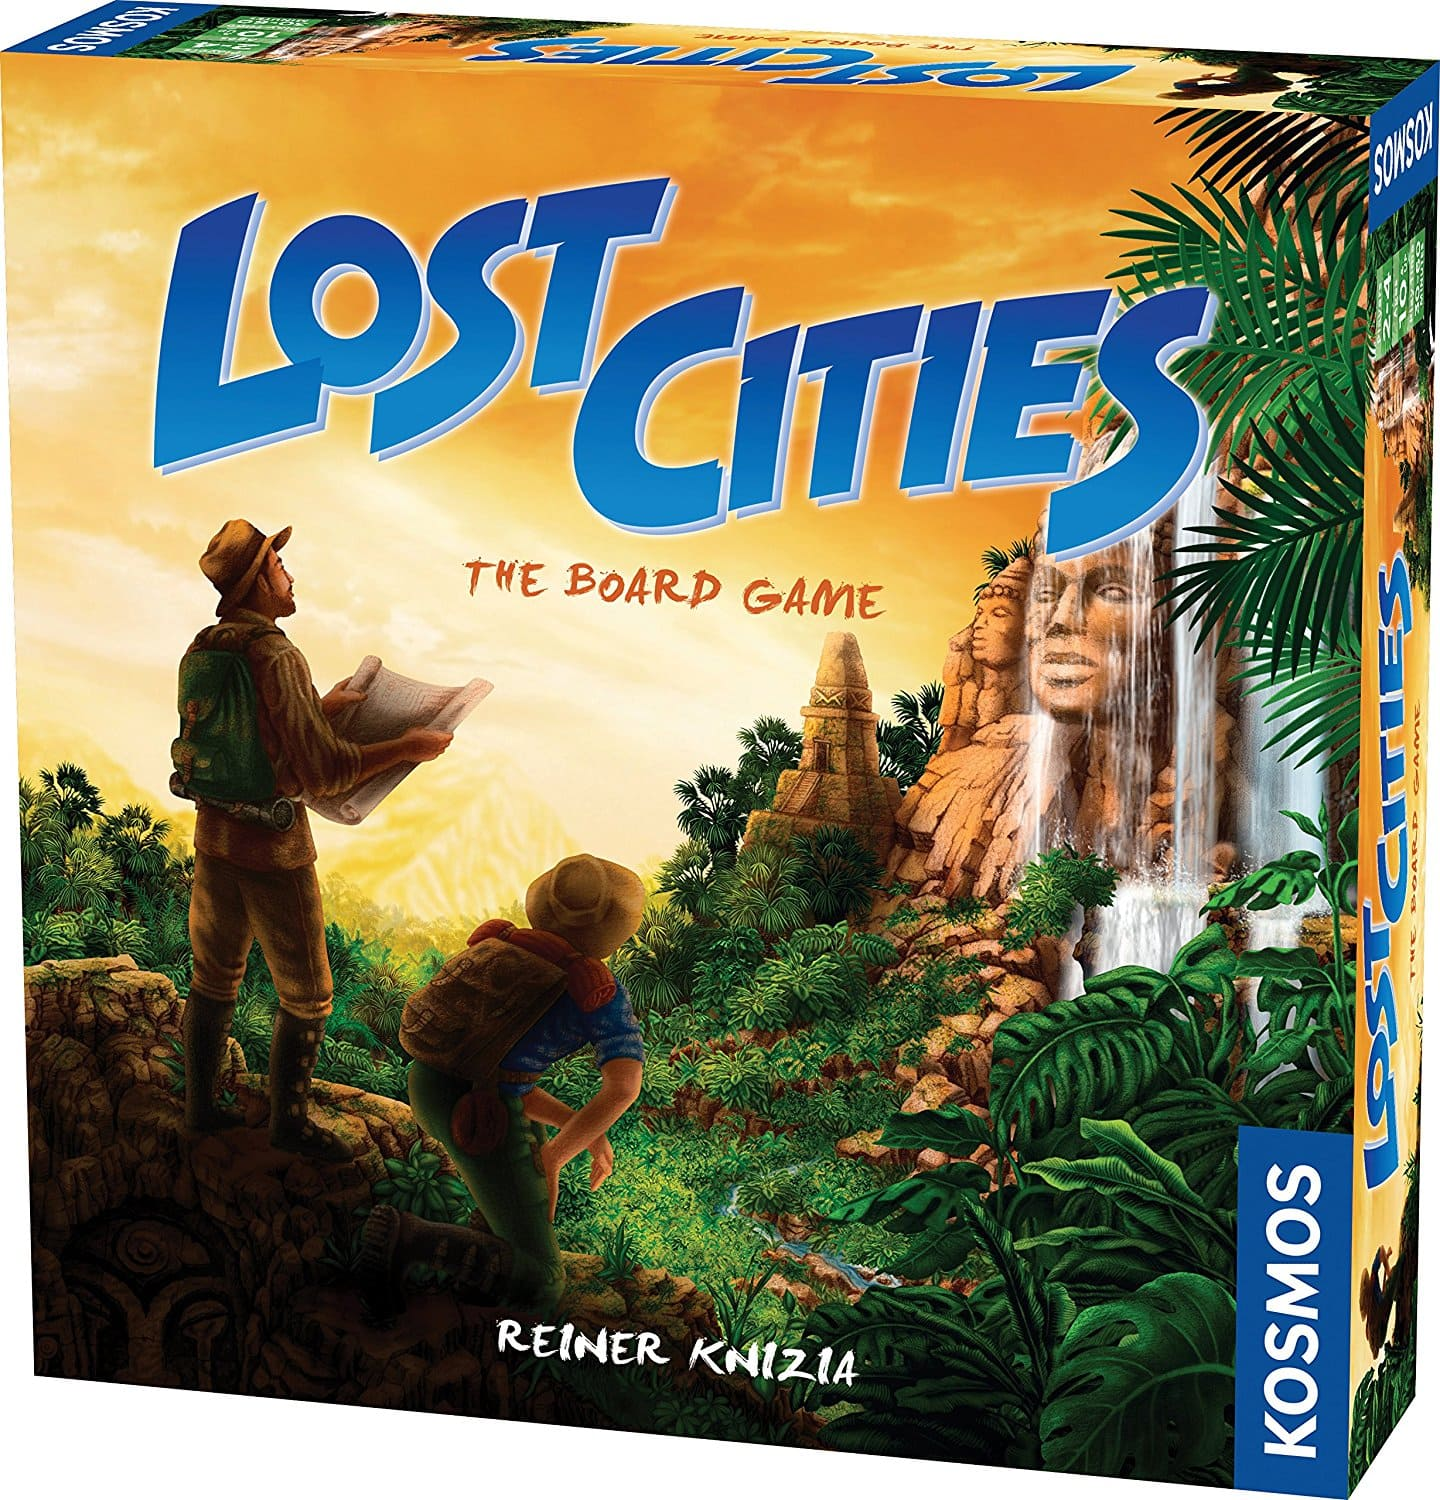 Lost Cities - The Board Game $19.99